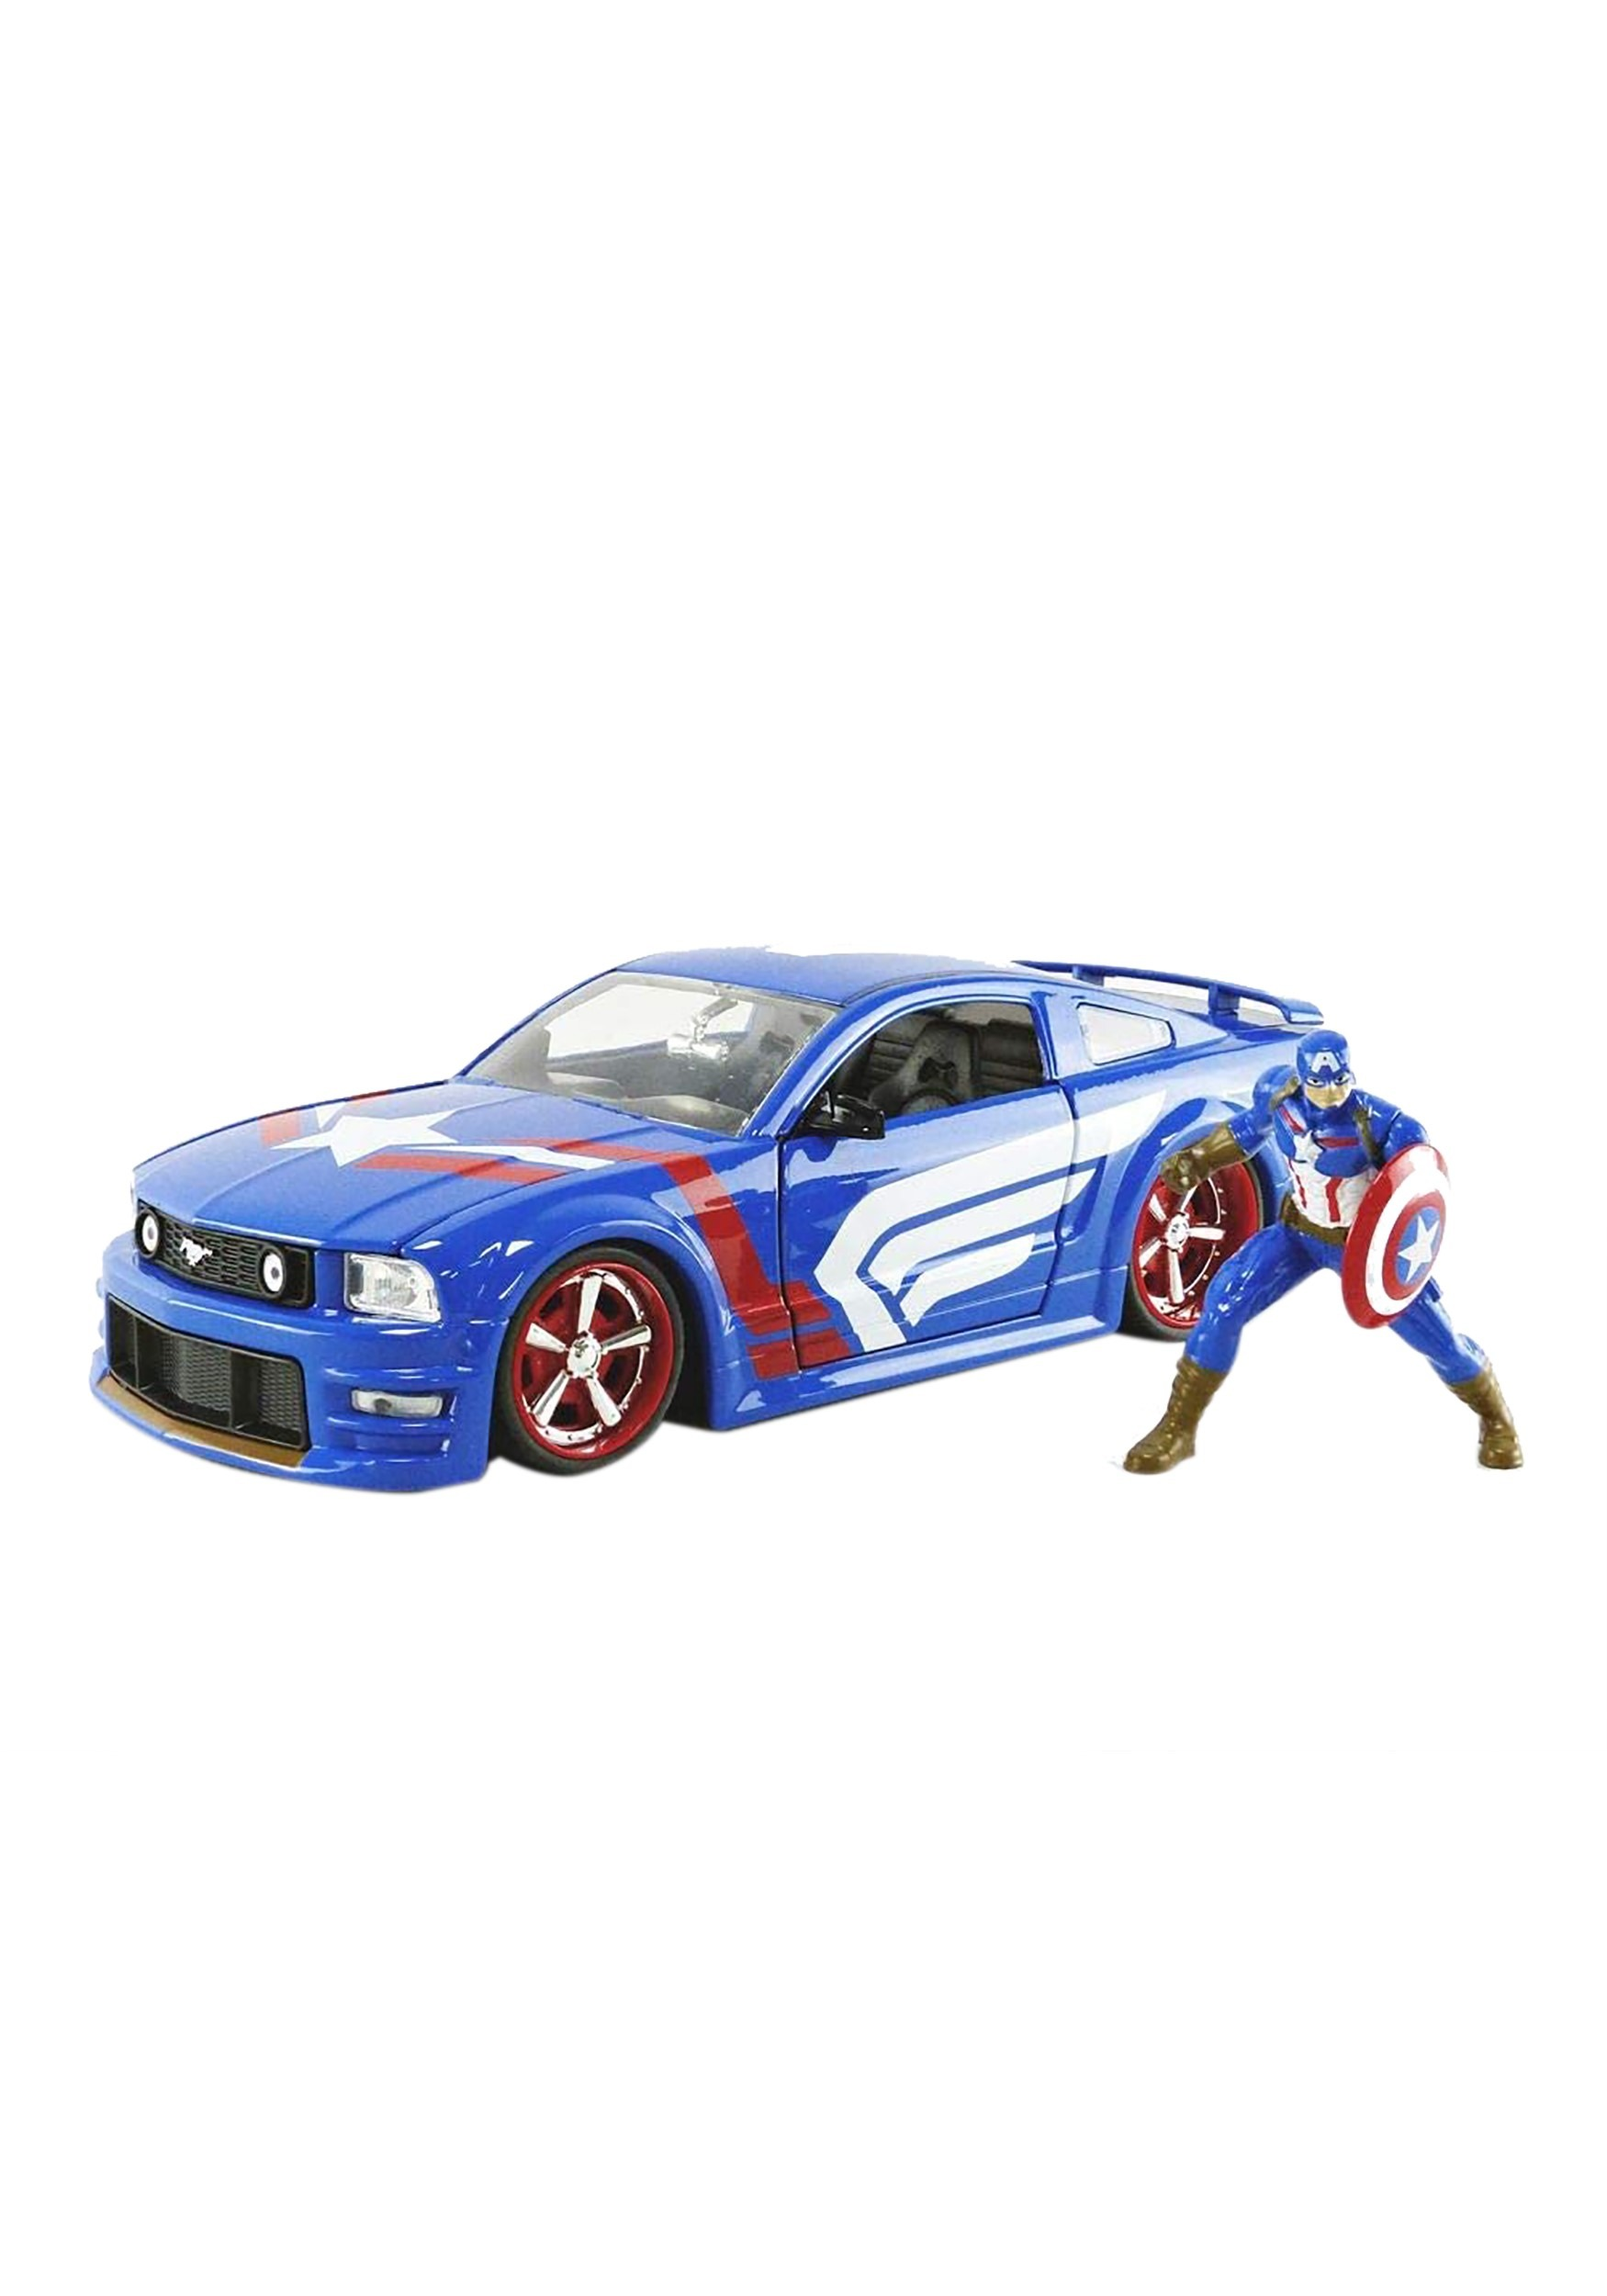 1:24 Scale 2006 Ford Mustang GT w/ Captain America